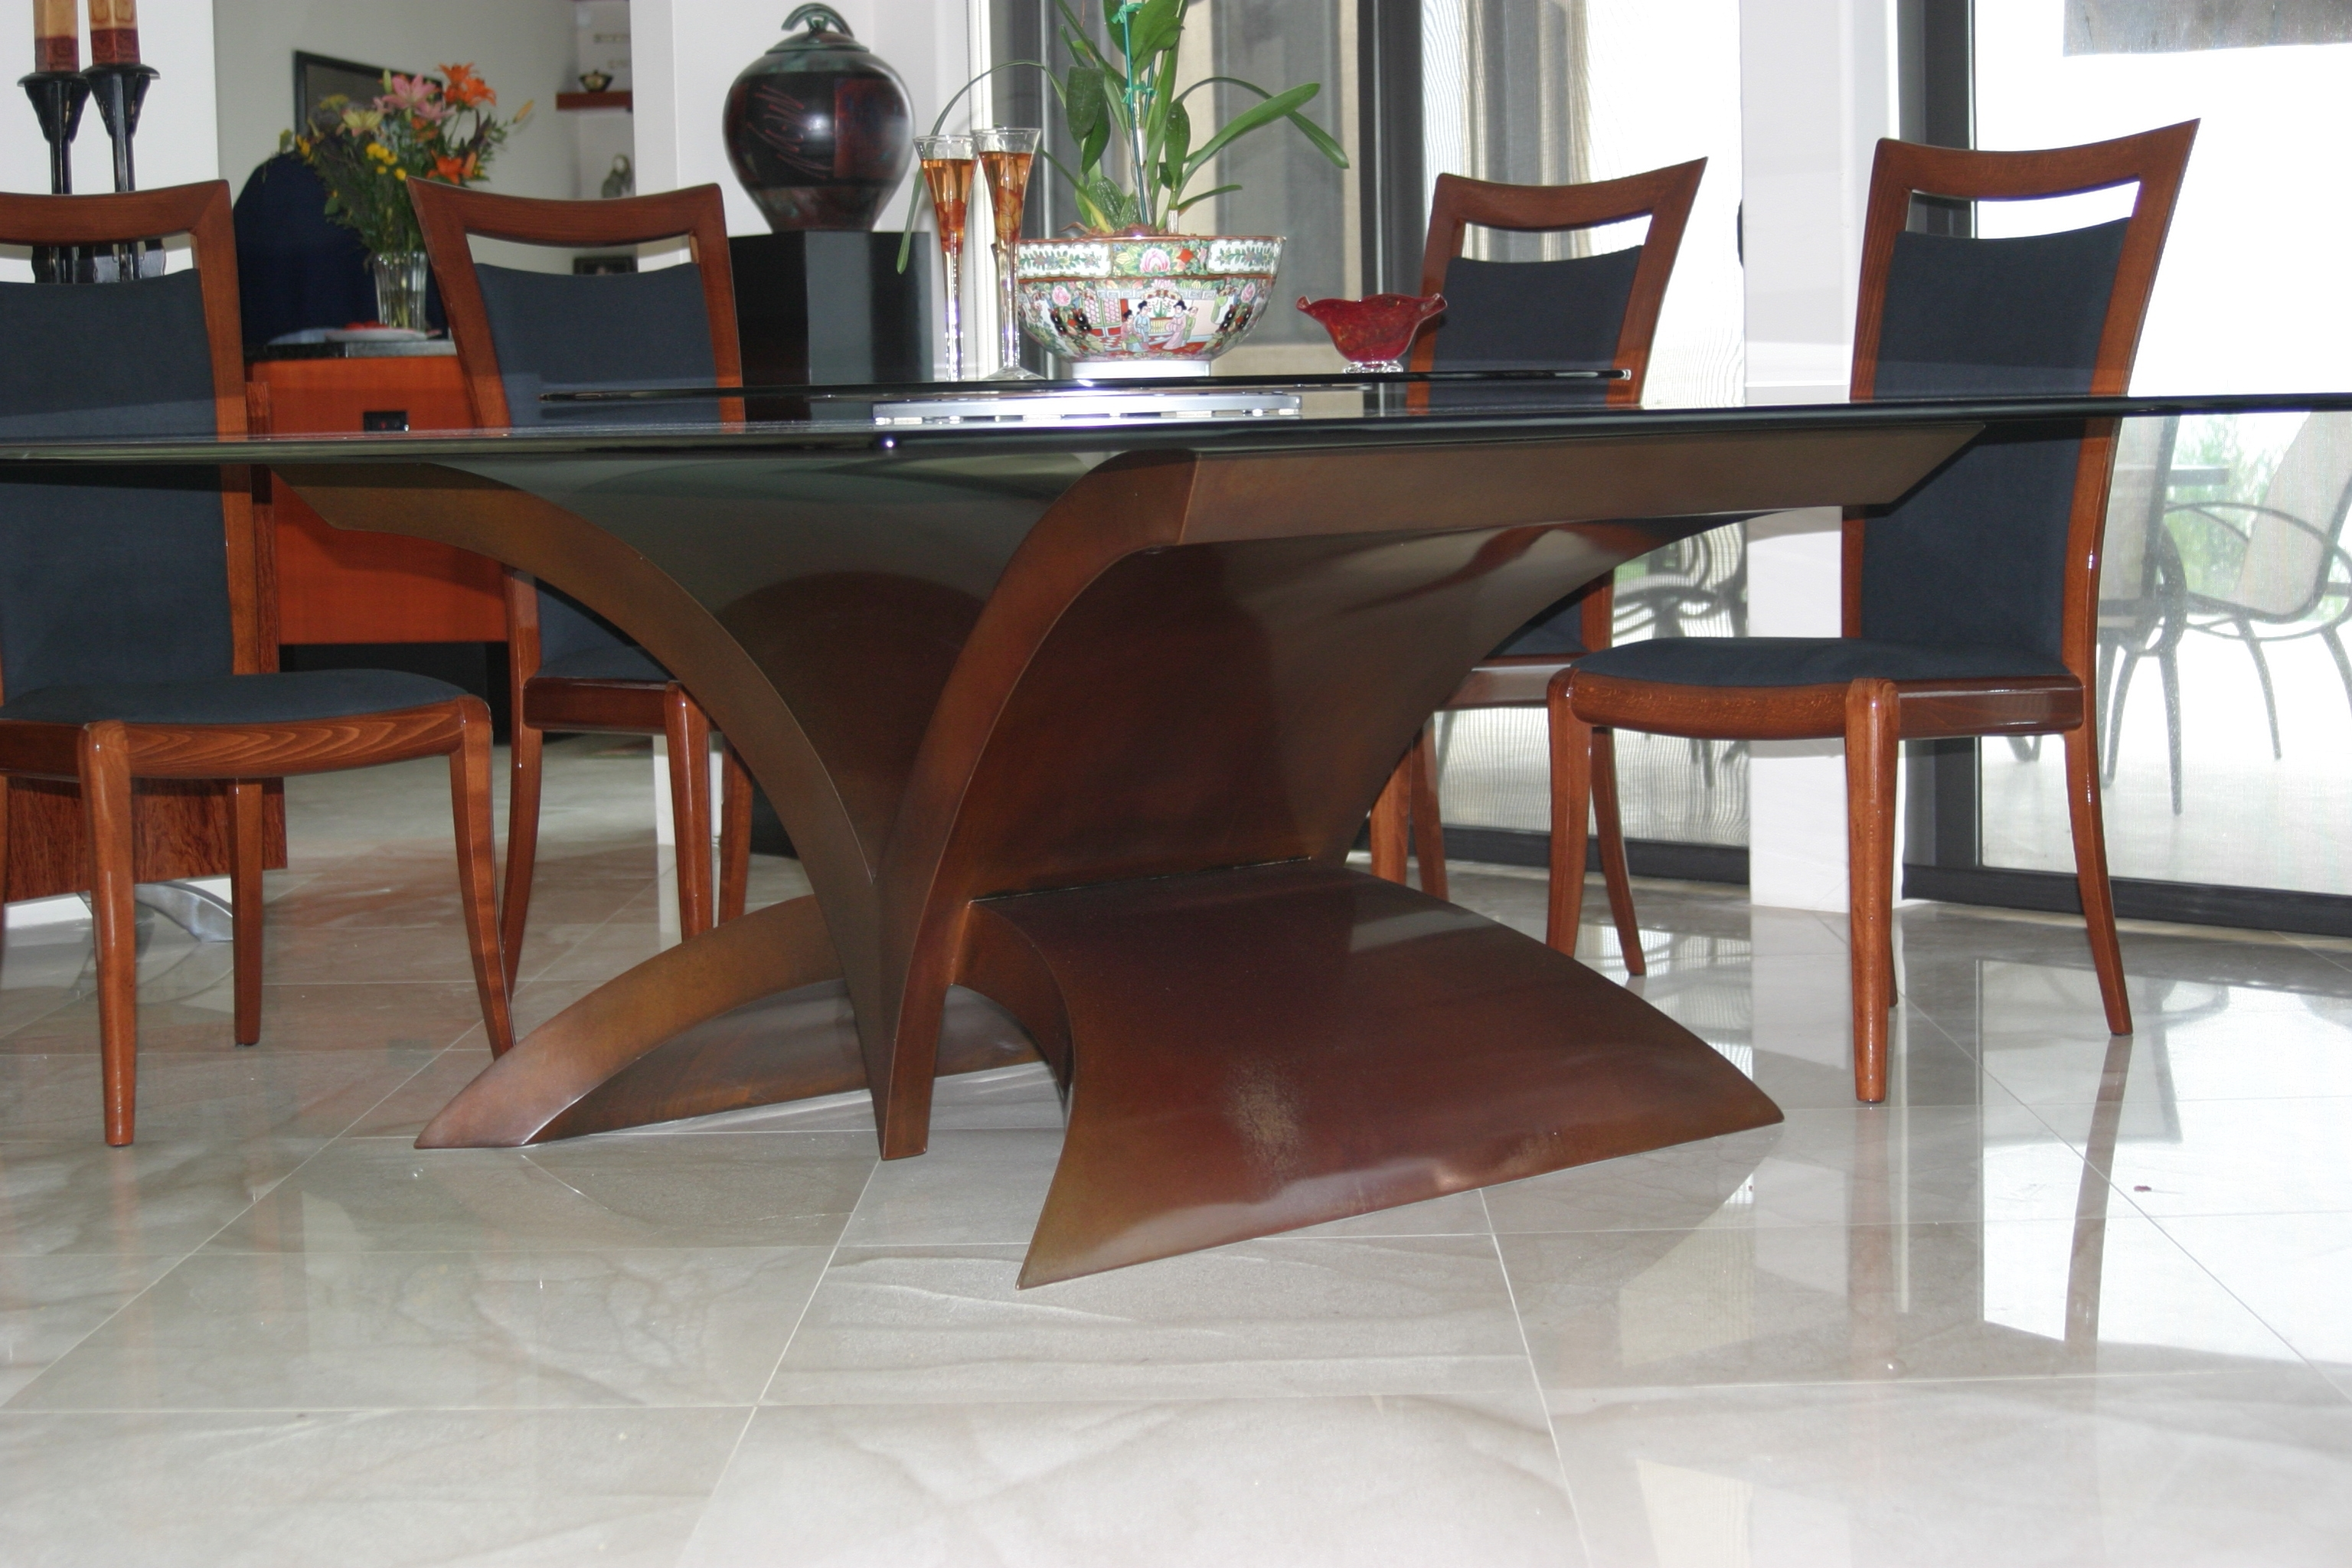 2018 Tables & Bases - Gillberg Design Inc for Contemporary Base Dining Tables